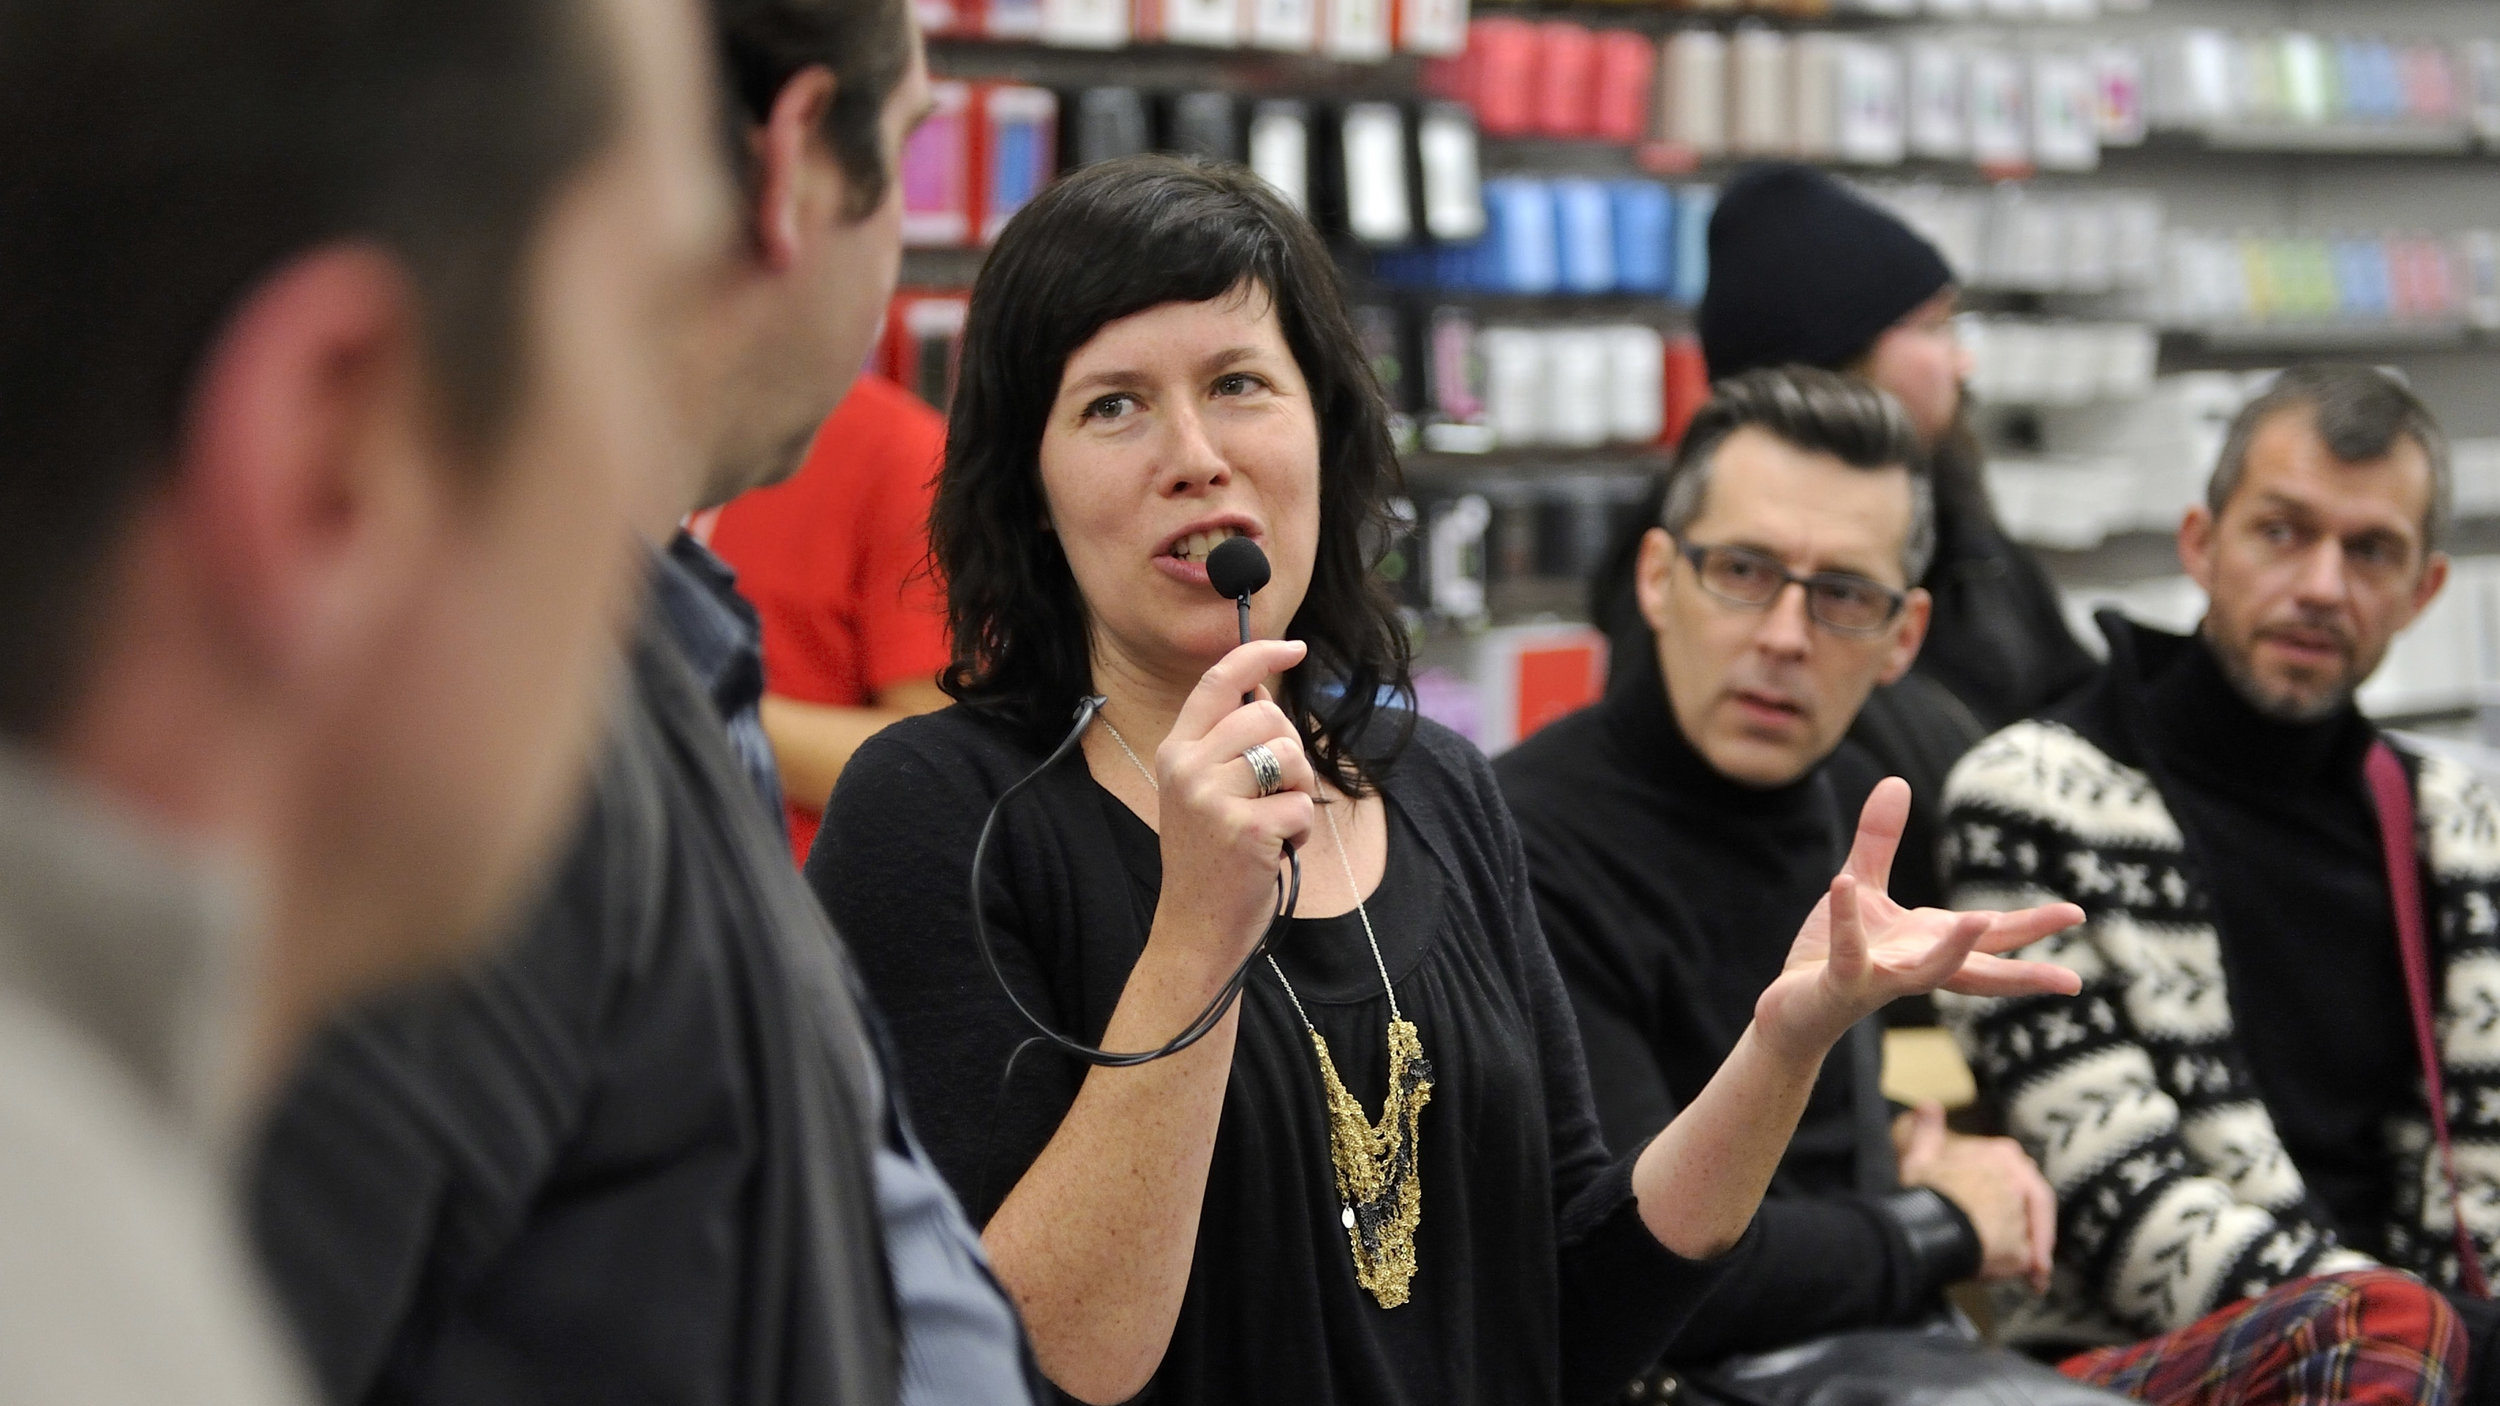 MAM-conference-Apple-Store-D-Beaumont-11-28-2013-179.jpg